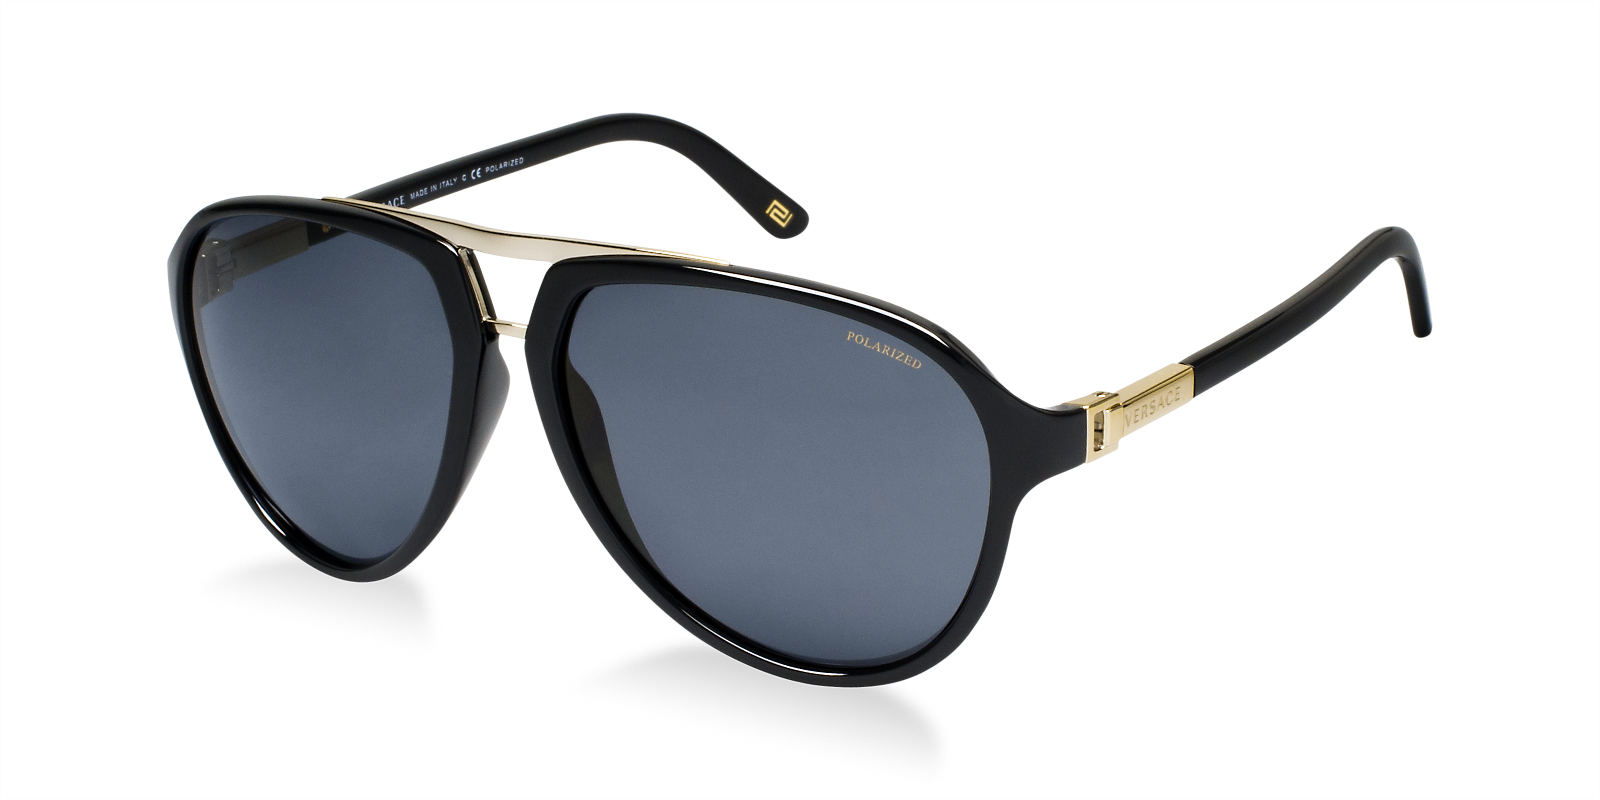 Versace VE4223 Sunglasses image #589